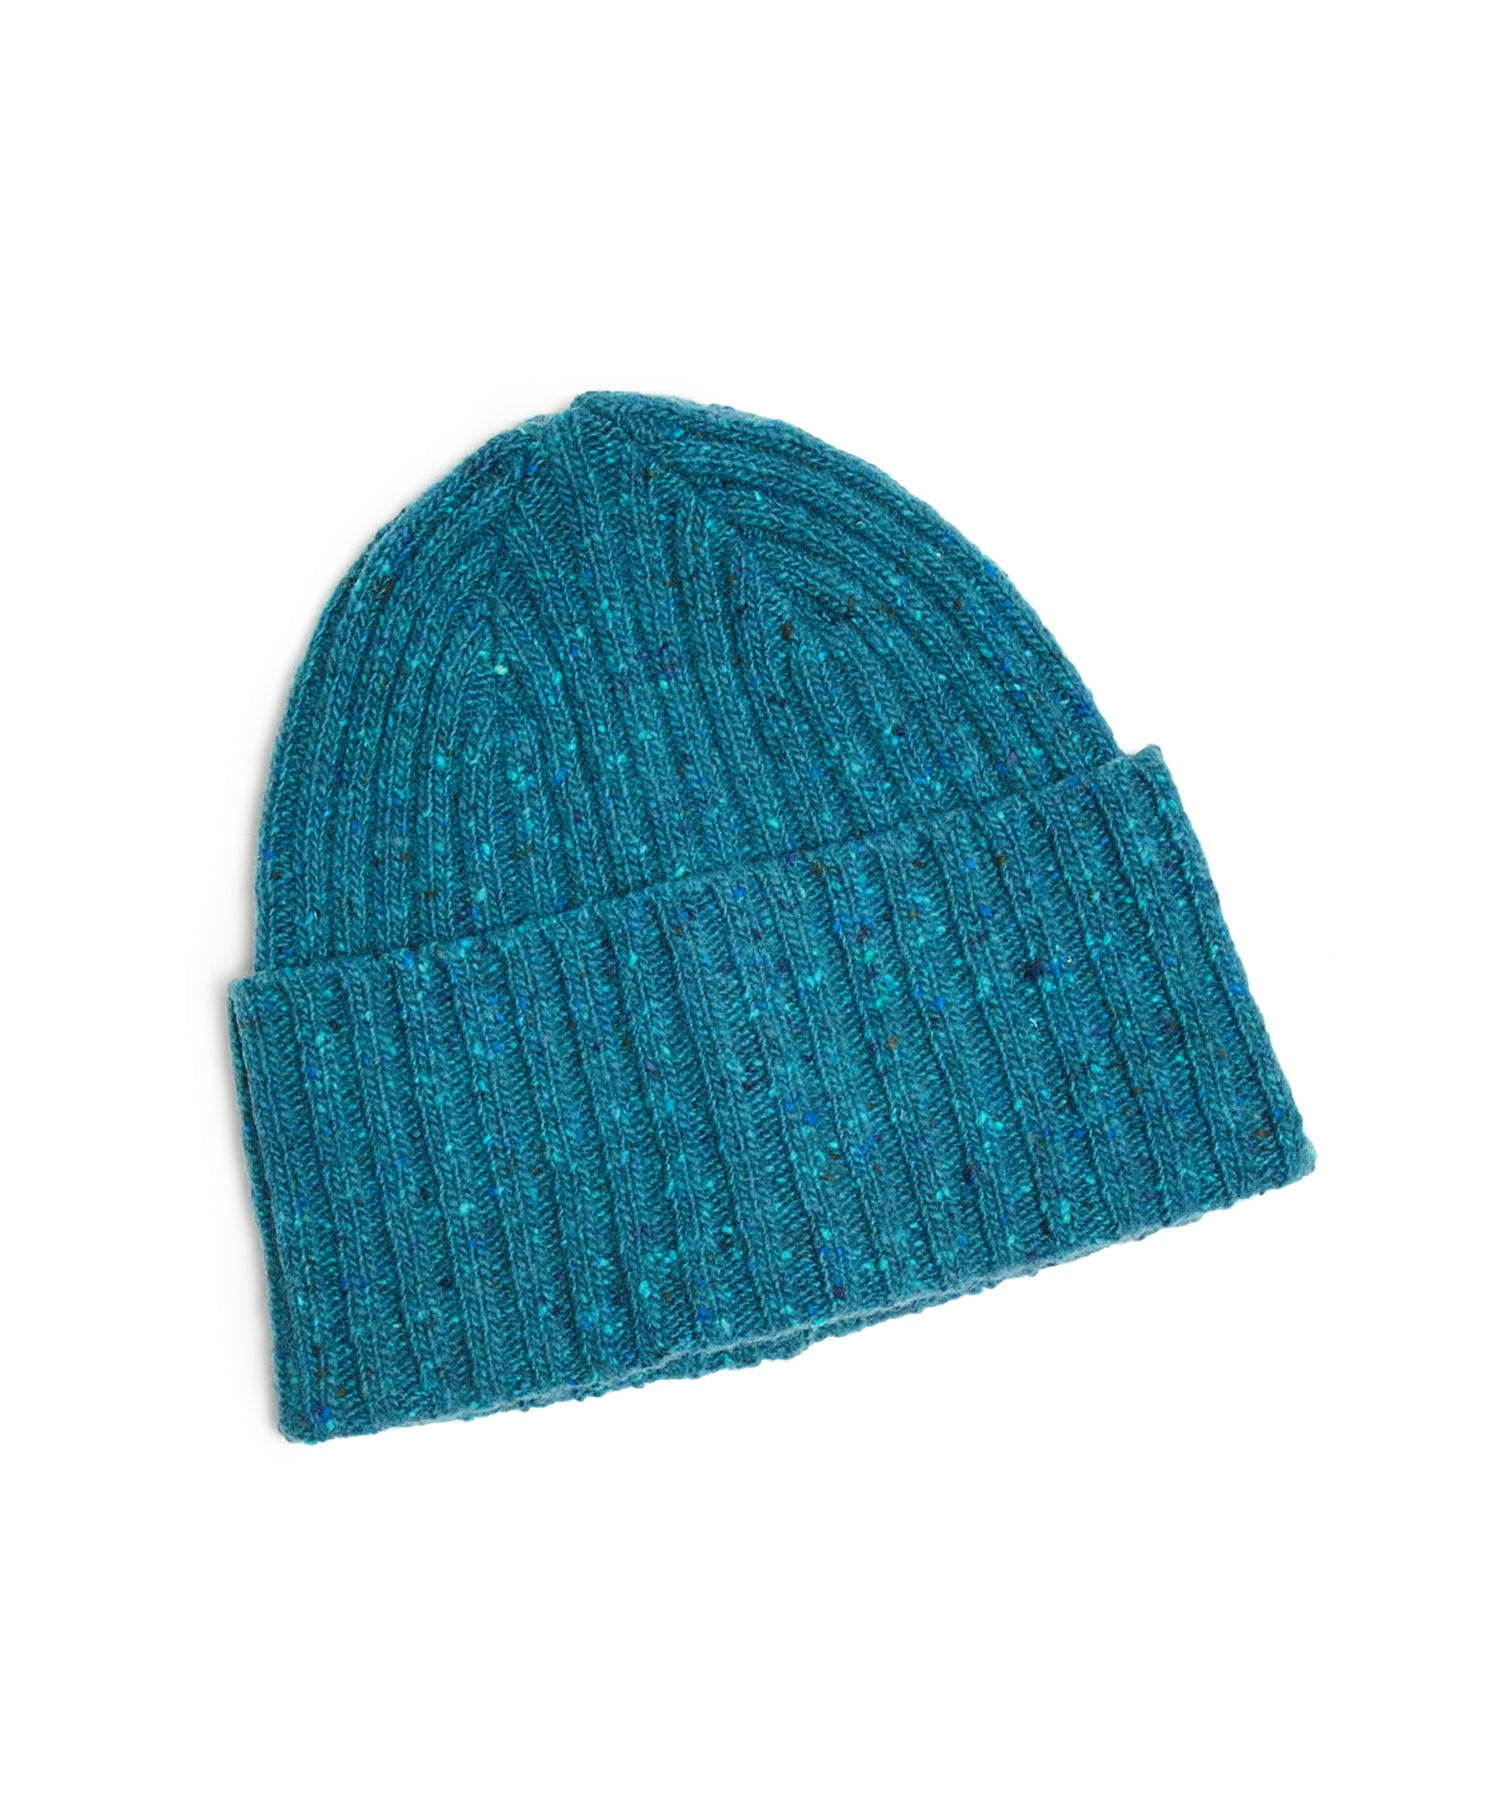 Drake s Donegal Merino Wool Hat in Turquoise 30f966b4d78